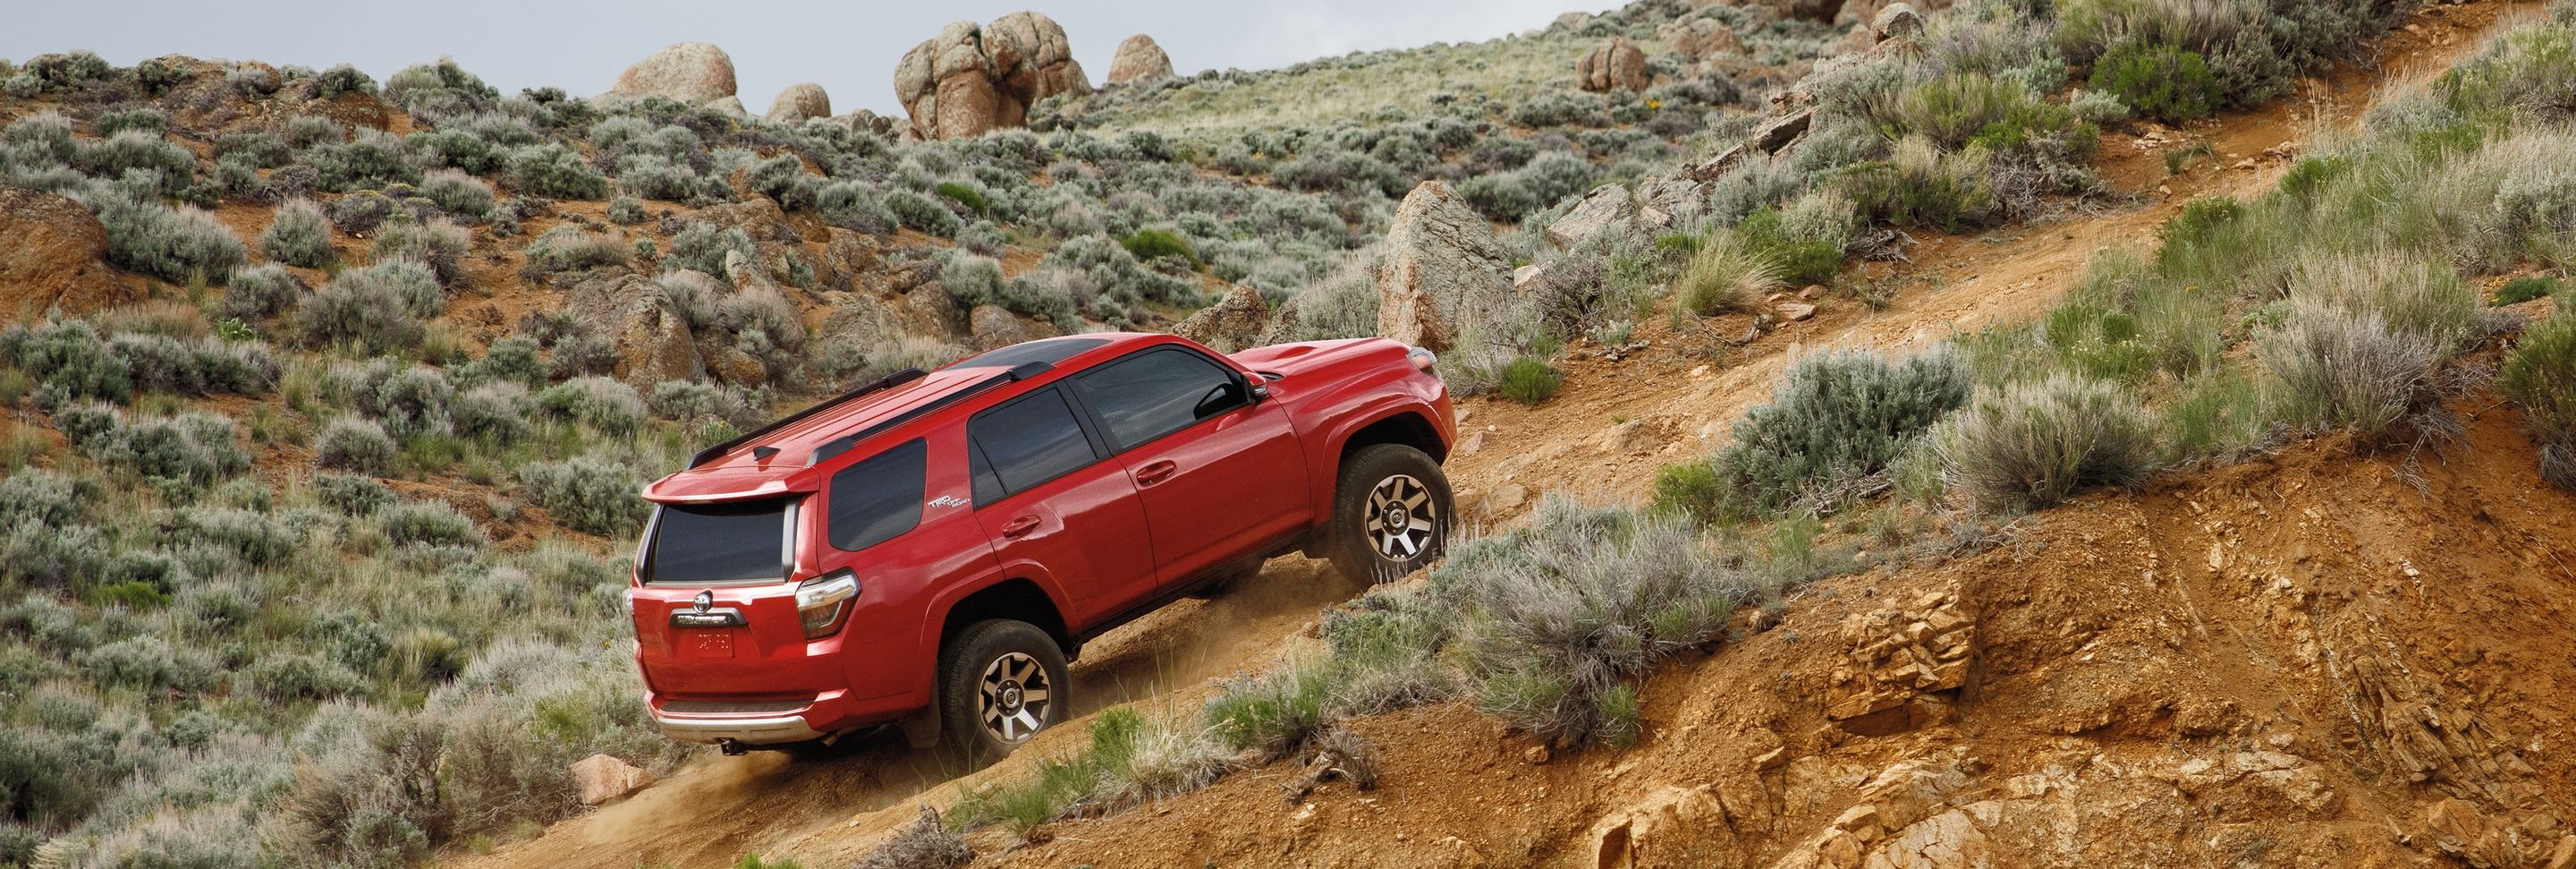 2020 Toyota 4Runner for Sale in Rockford, IL